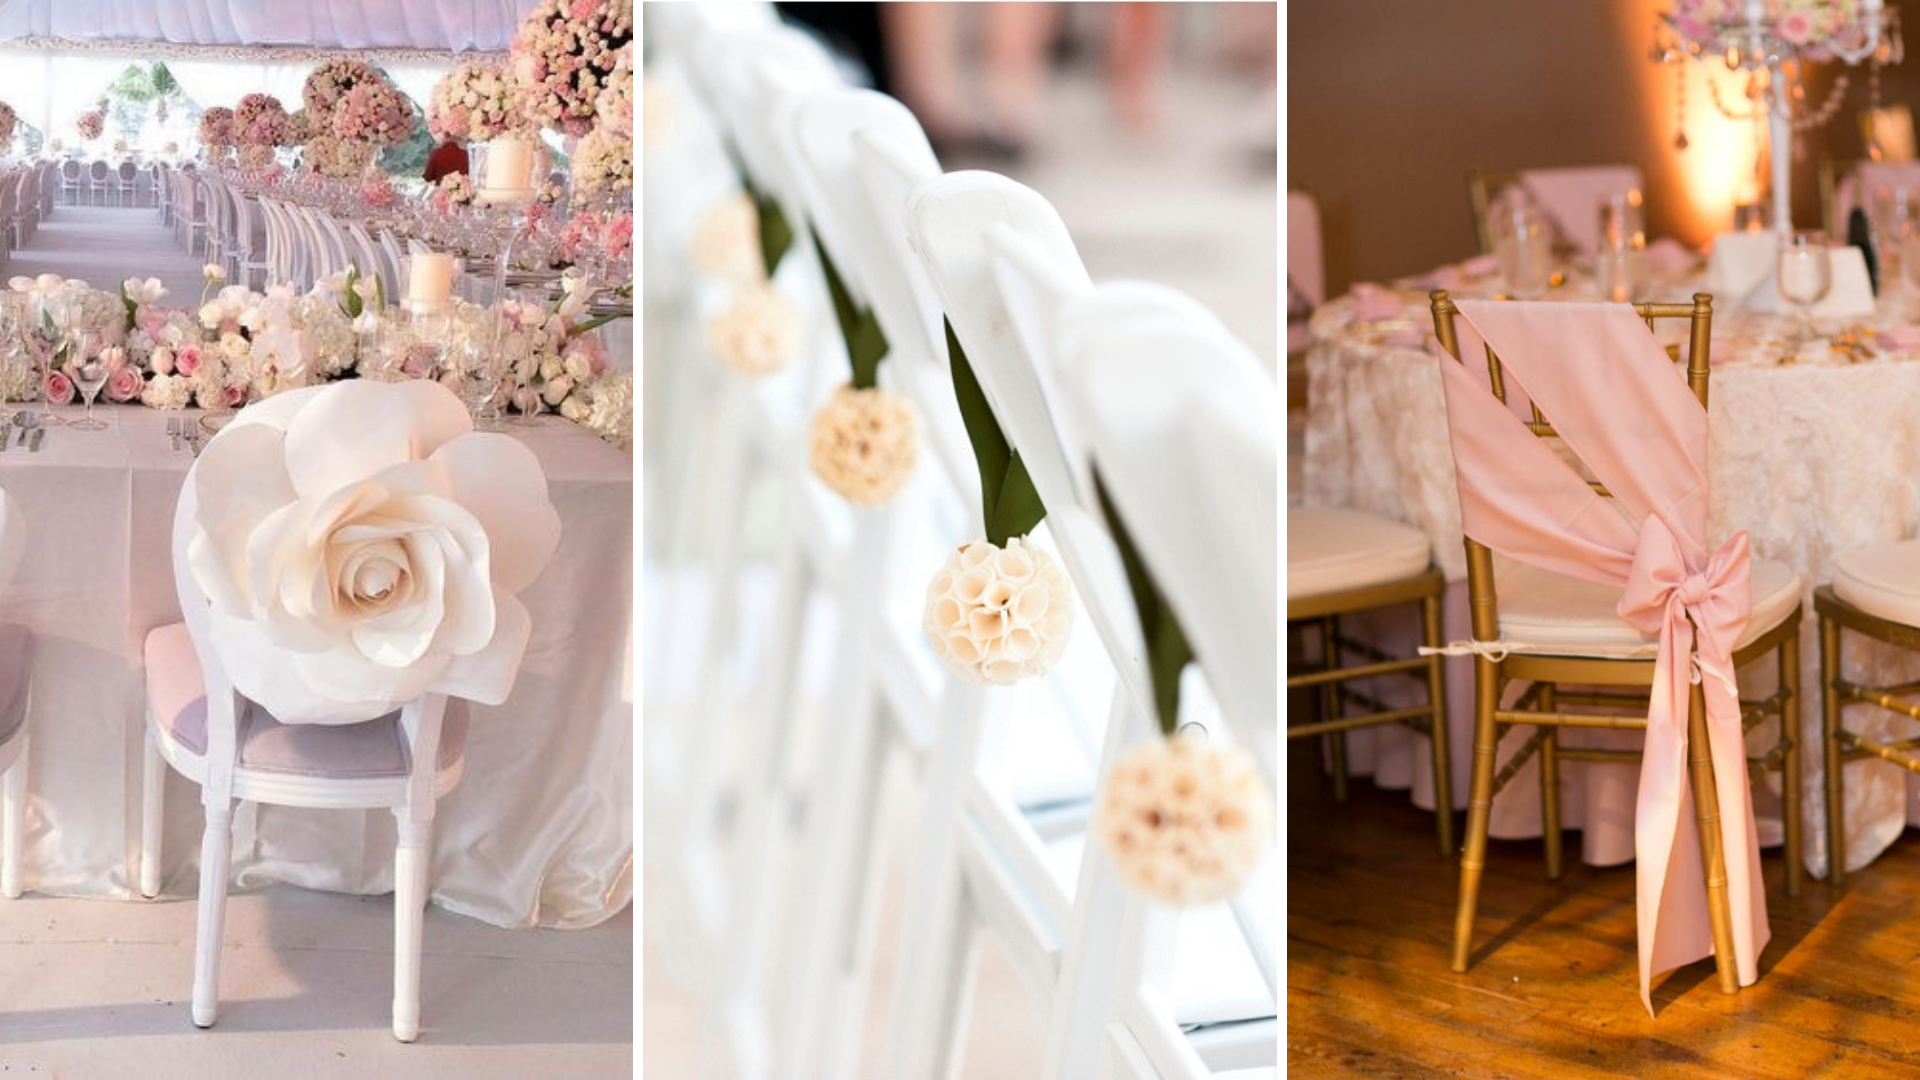 Wedding Banquet Chairs' Decor